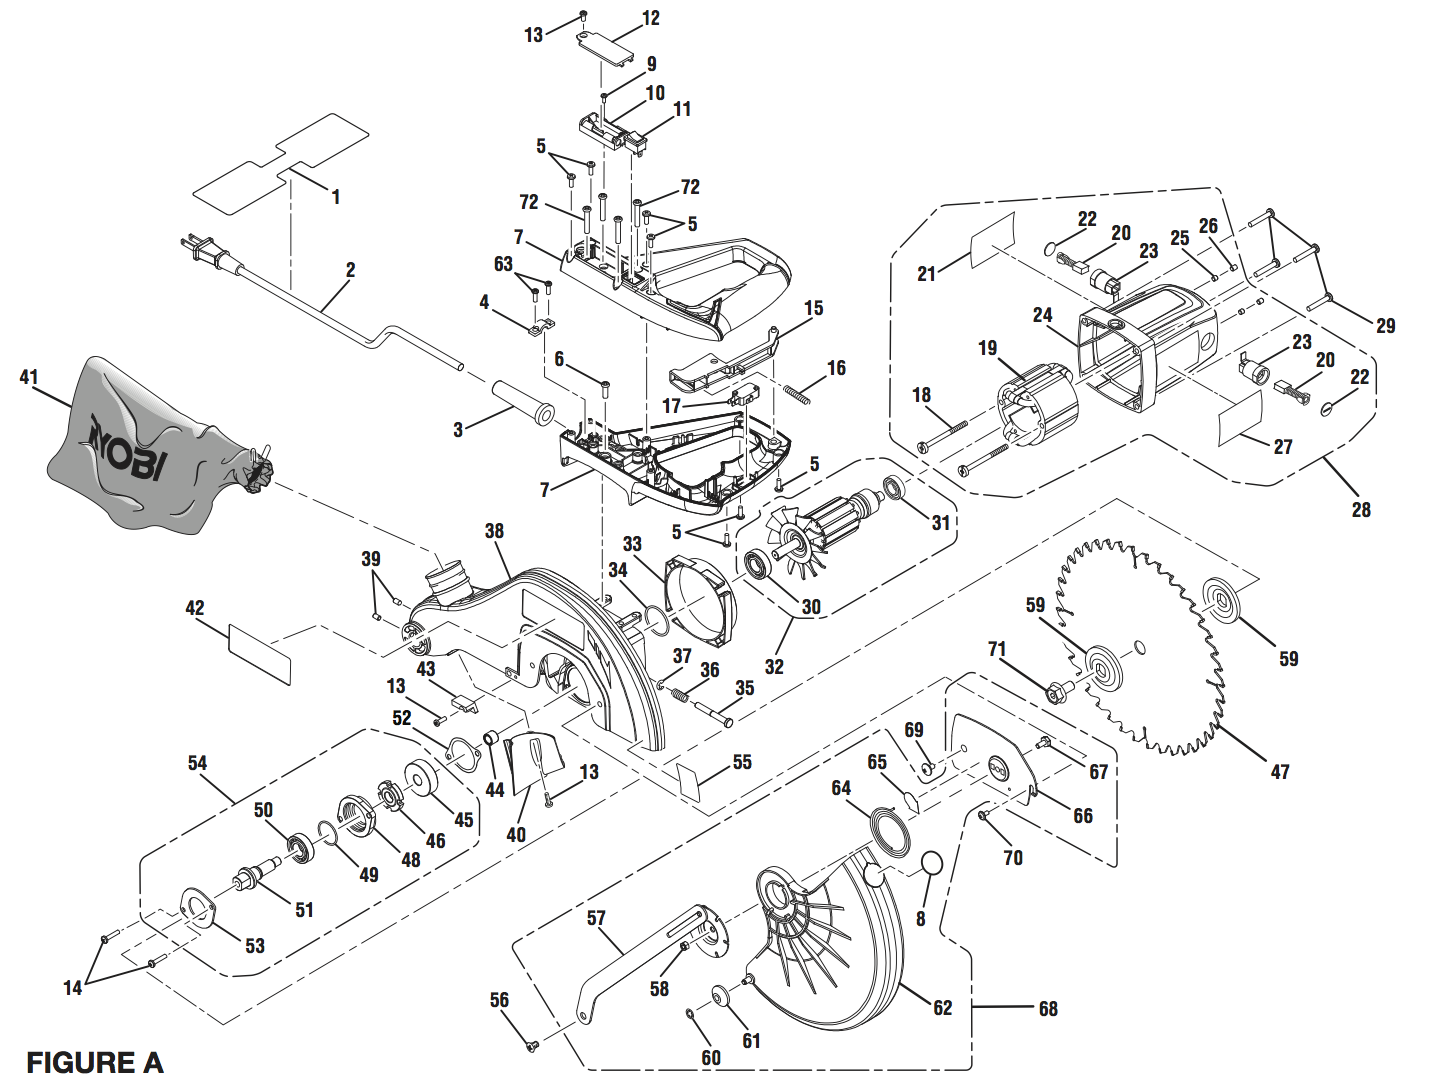 ts1344l ryobi miter saw exploded view parts diagram [ 1439 x 1085 Pixel ]